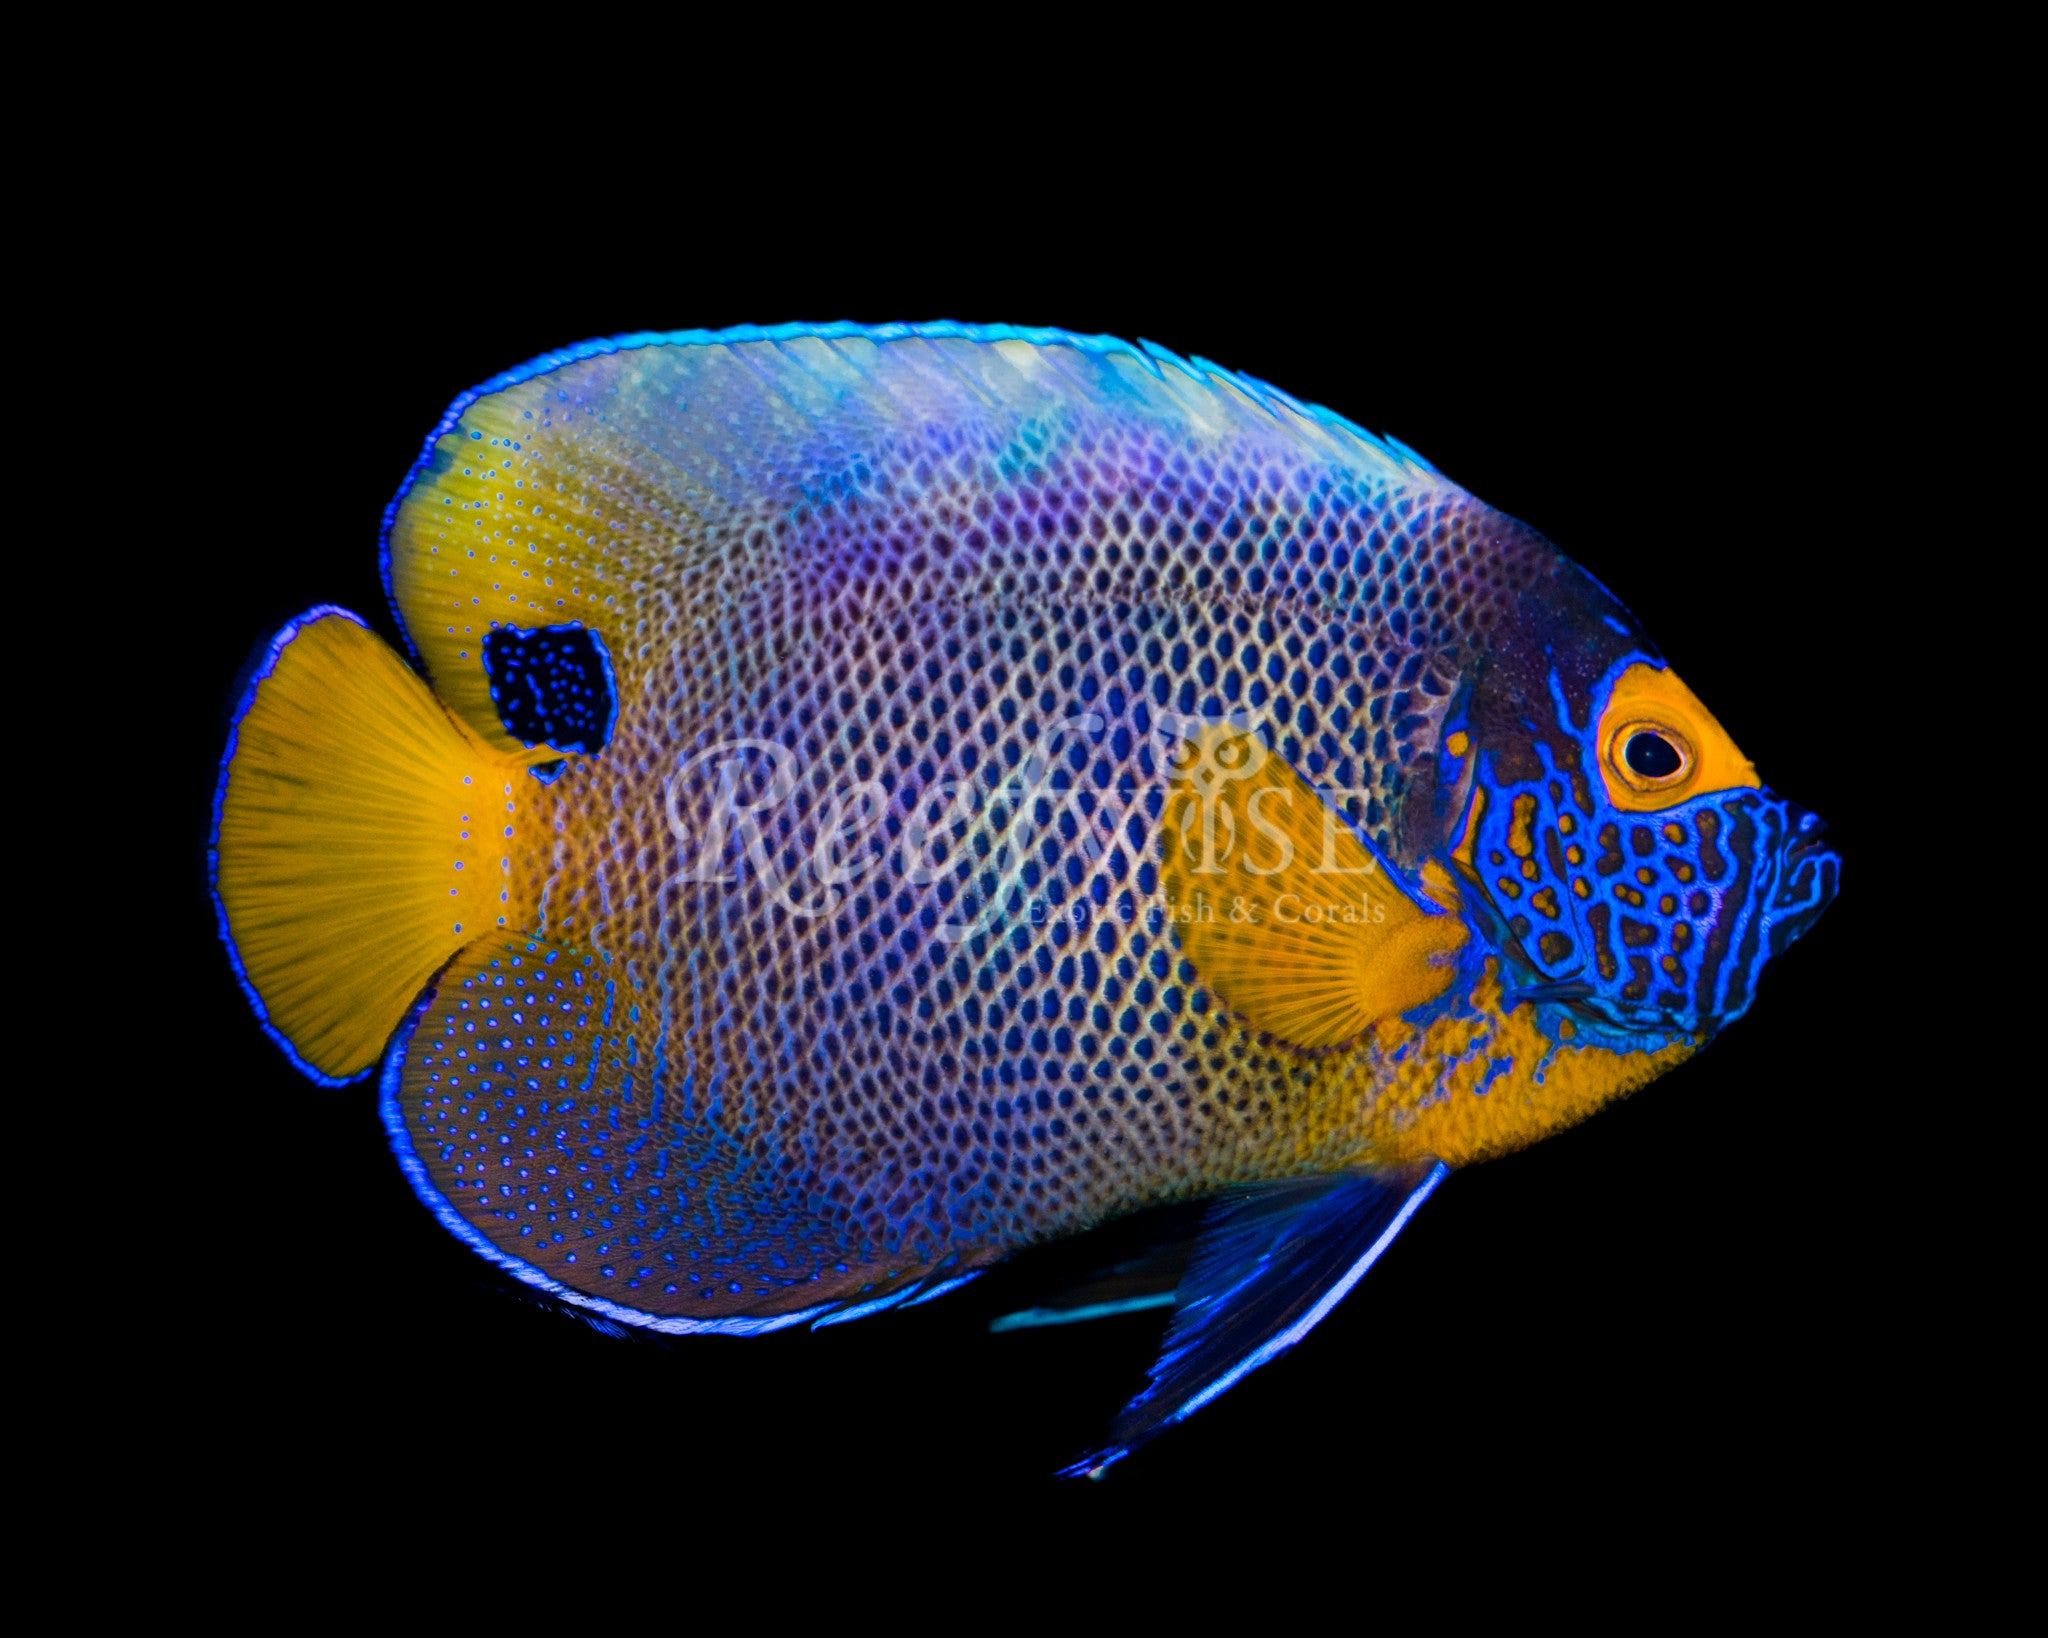 Blueface Angelfish WYSIWYG 1